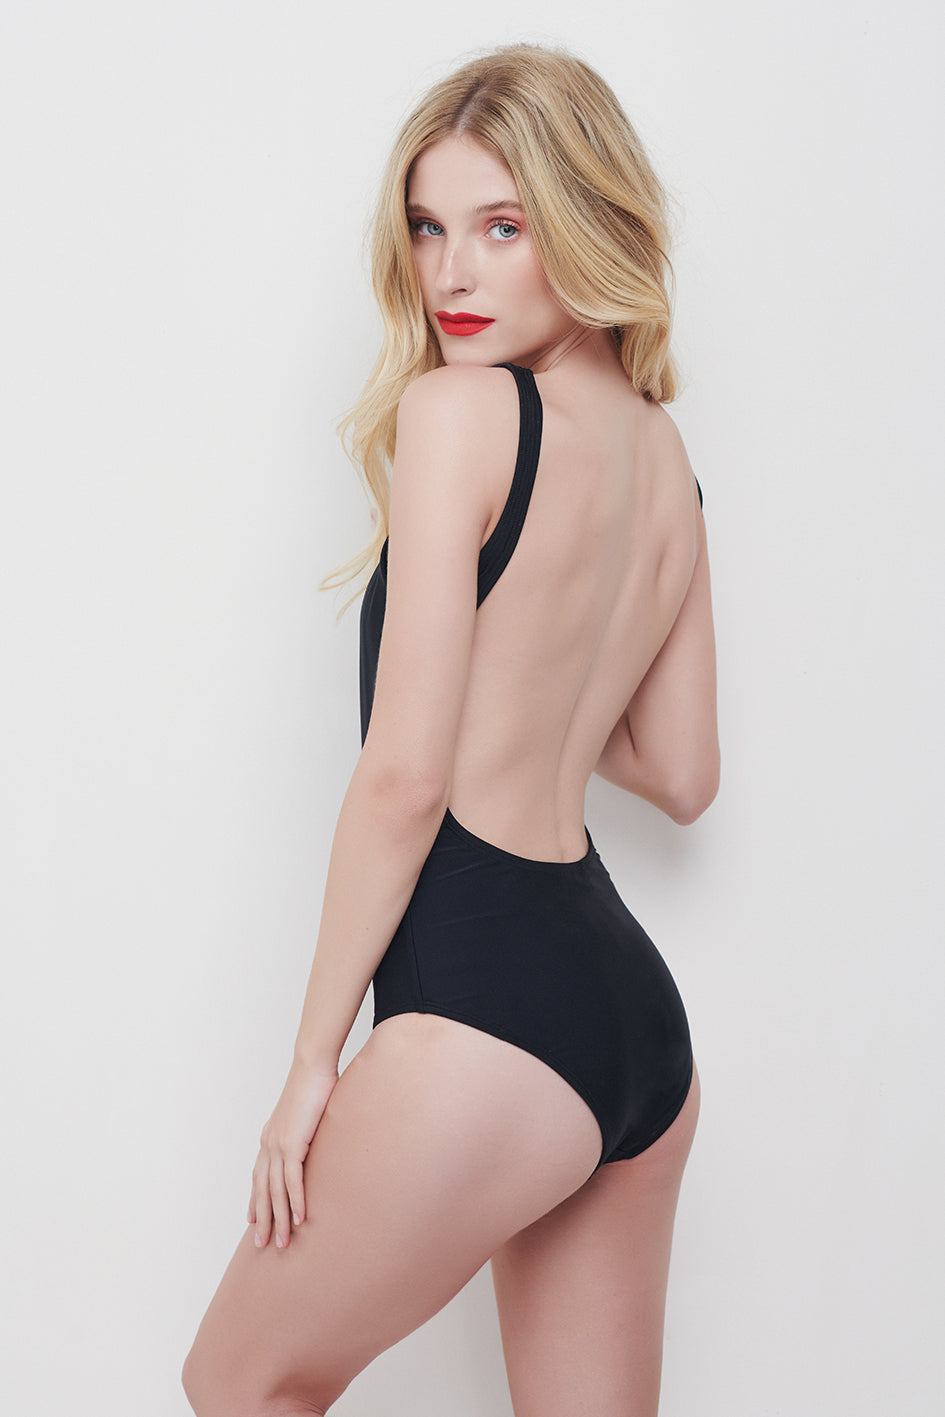 OPEN BACK - BLACK